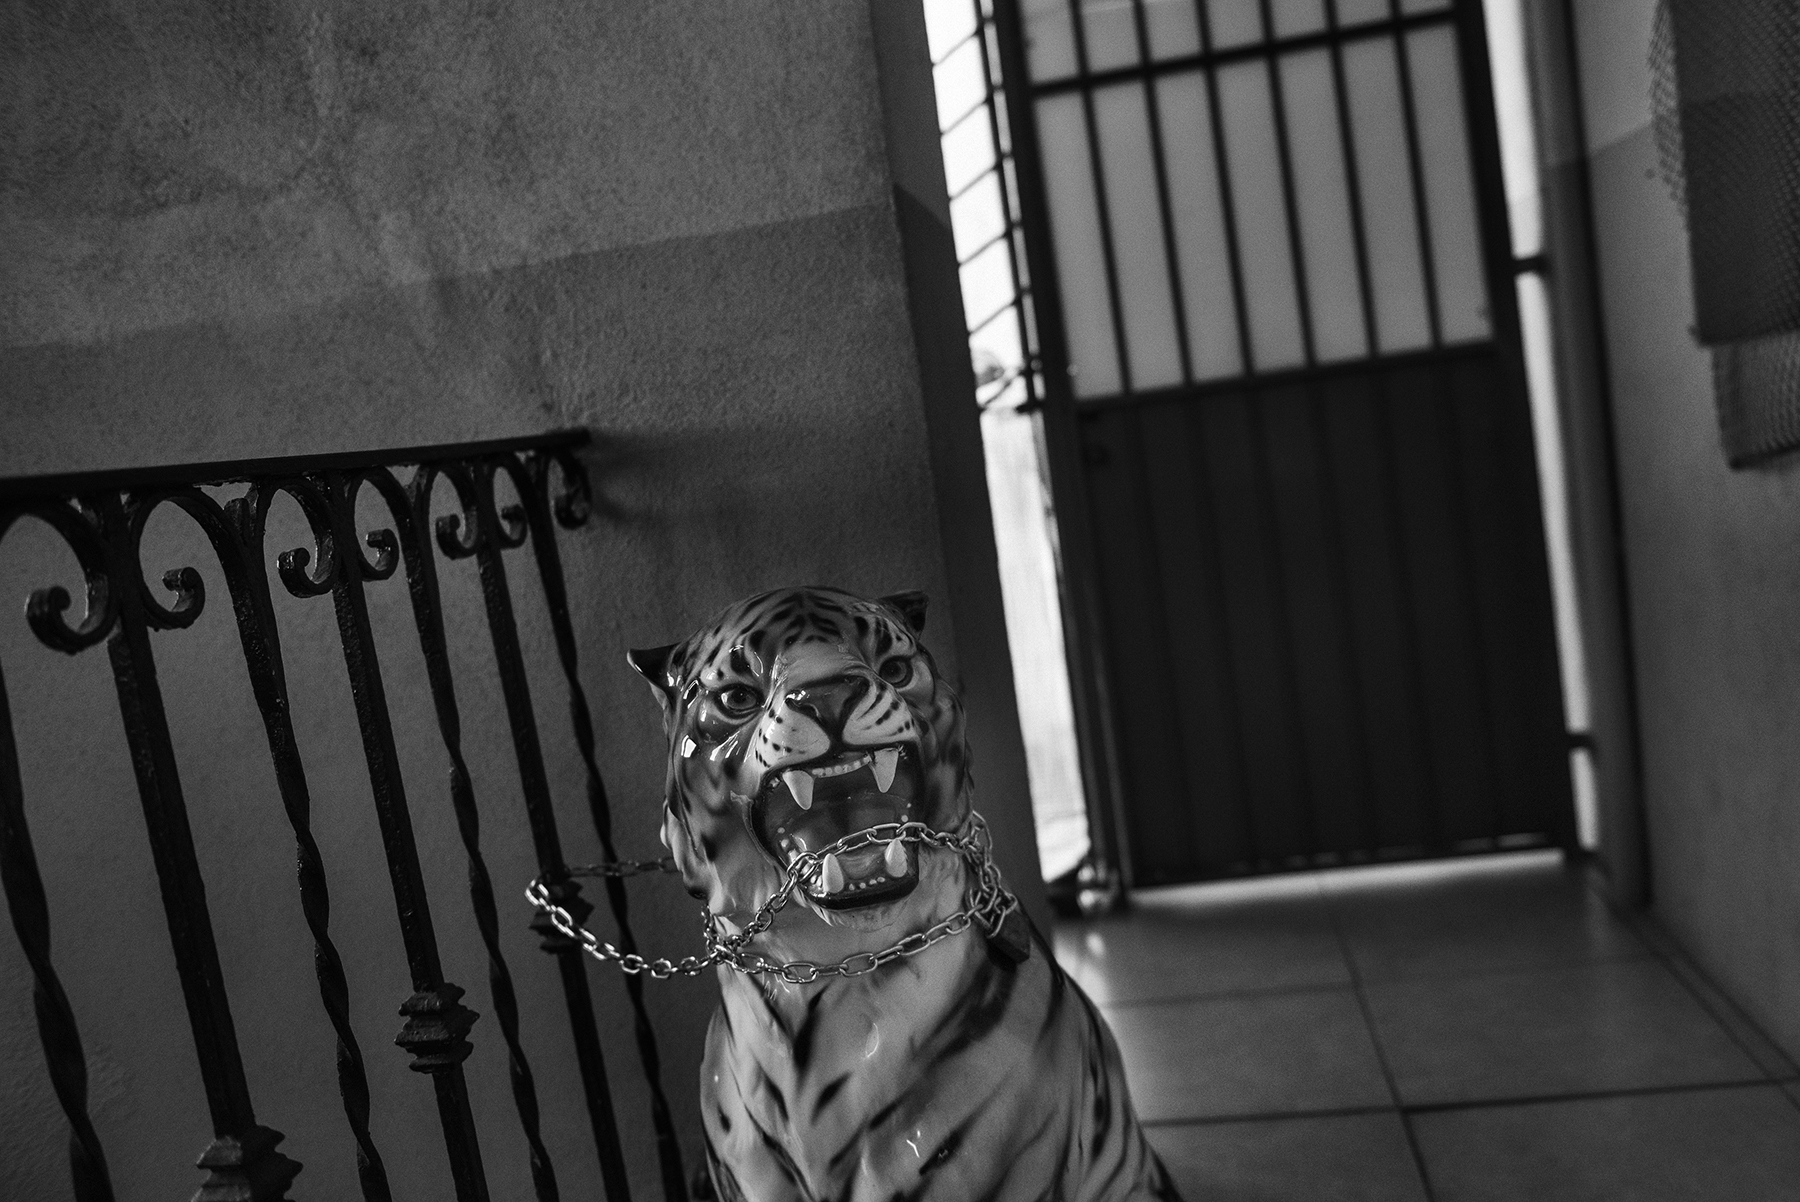 A tiger statue inside the former council estate building of Jacob Bamba (30), with shared toilets on the balconies, in the working class district of Barriera di Milano in Turin, Italy; November 2018.